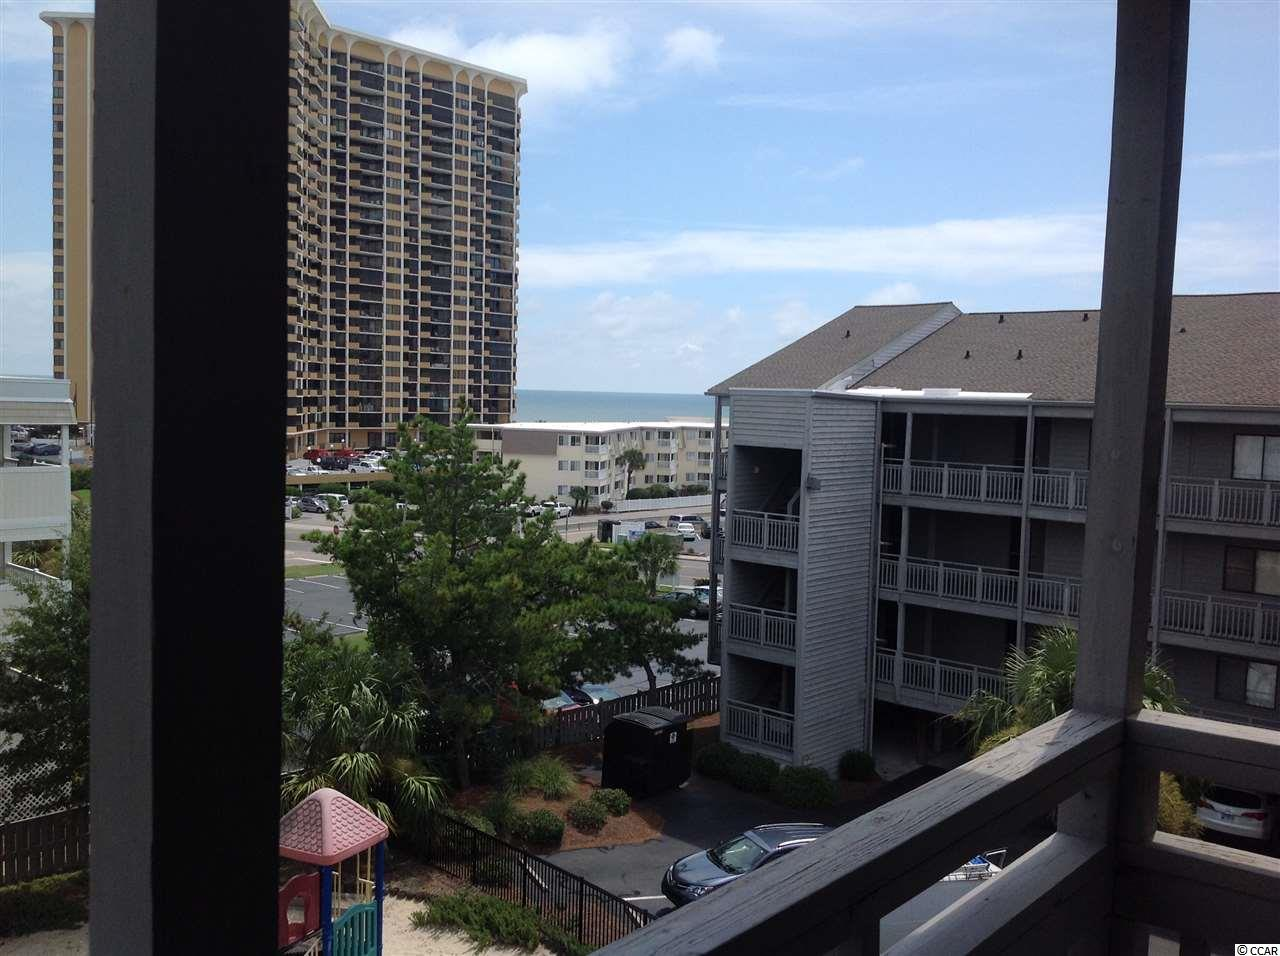 This 3 bedroom condo at  Pelicans Landing is currently for sale